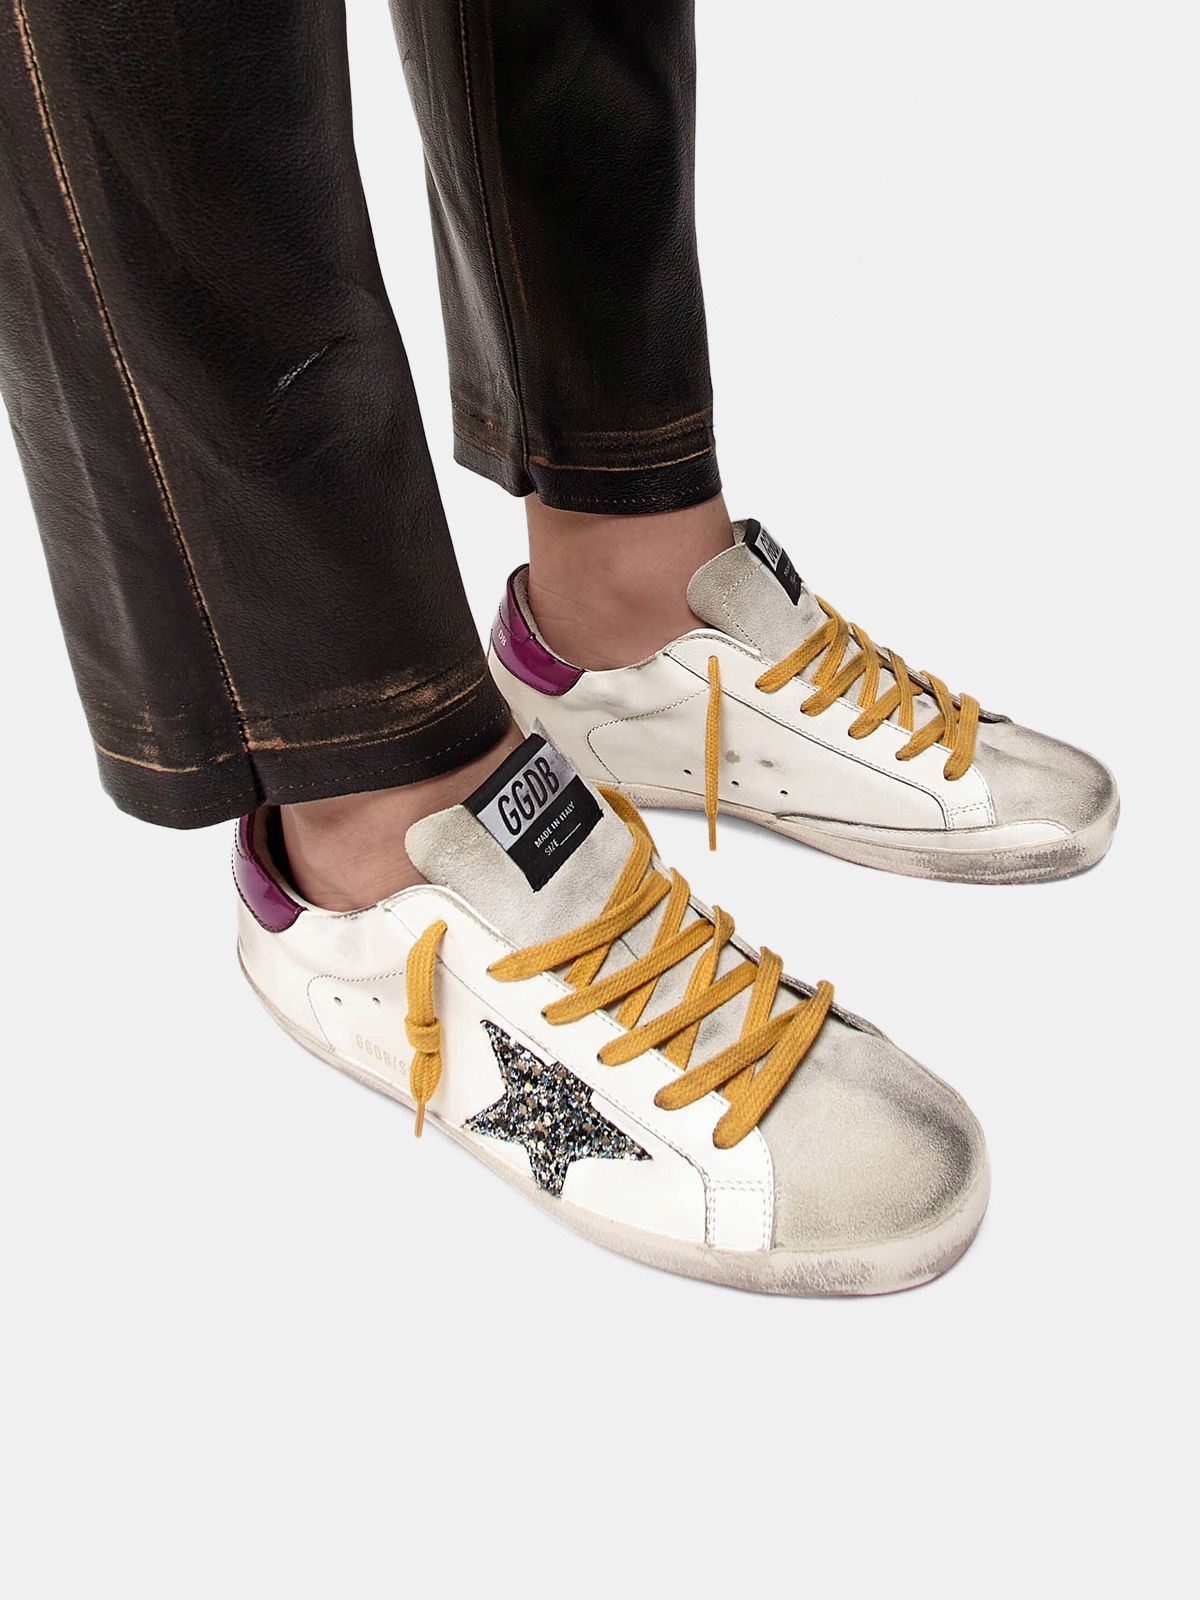 Golden Goose - Super-Star sneakers in leather with glittery star in